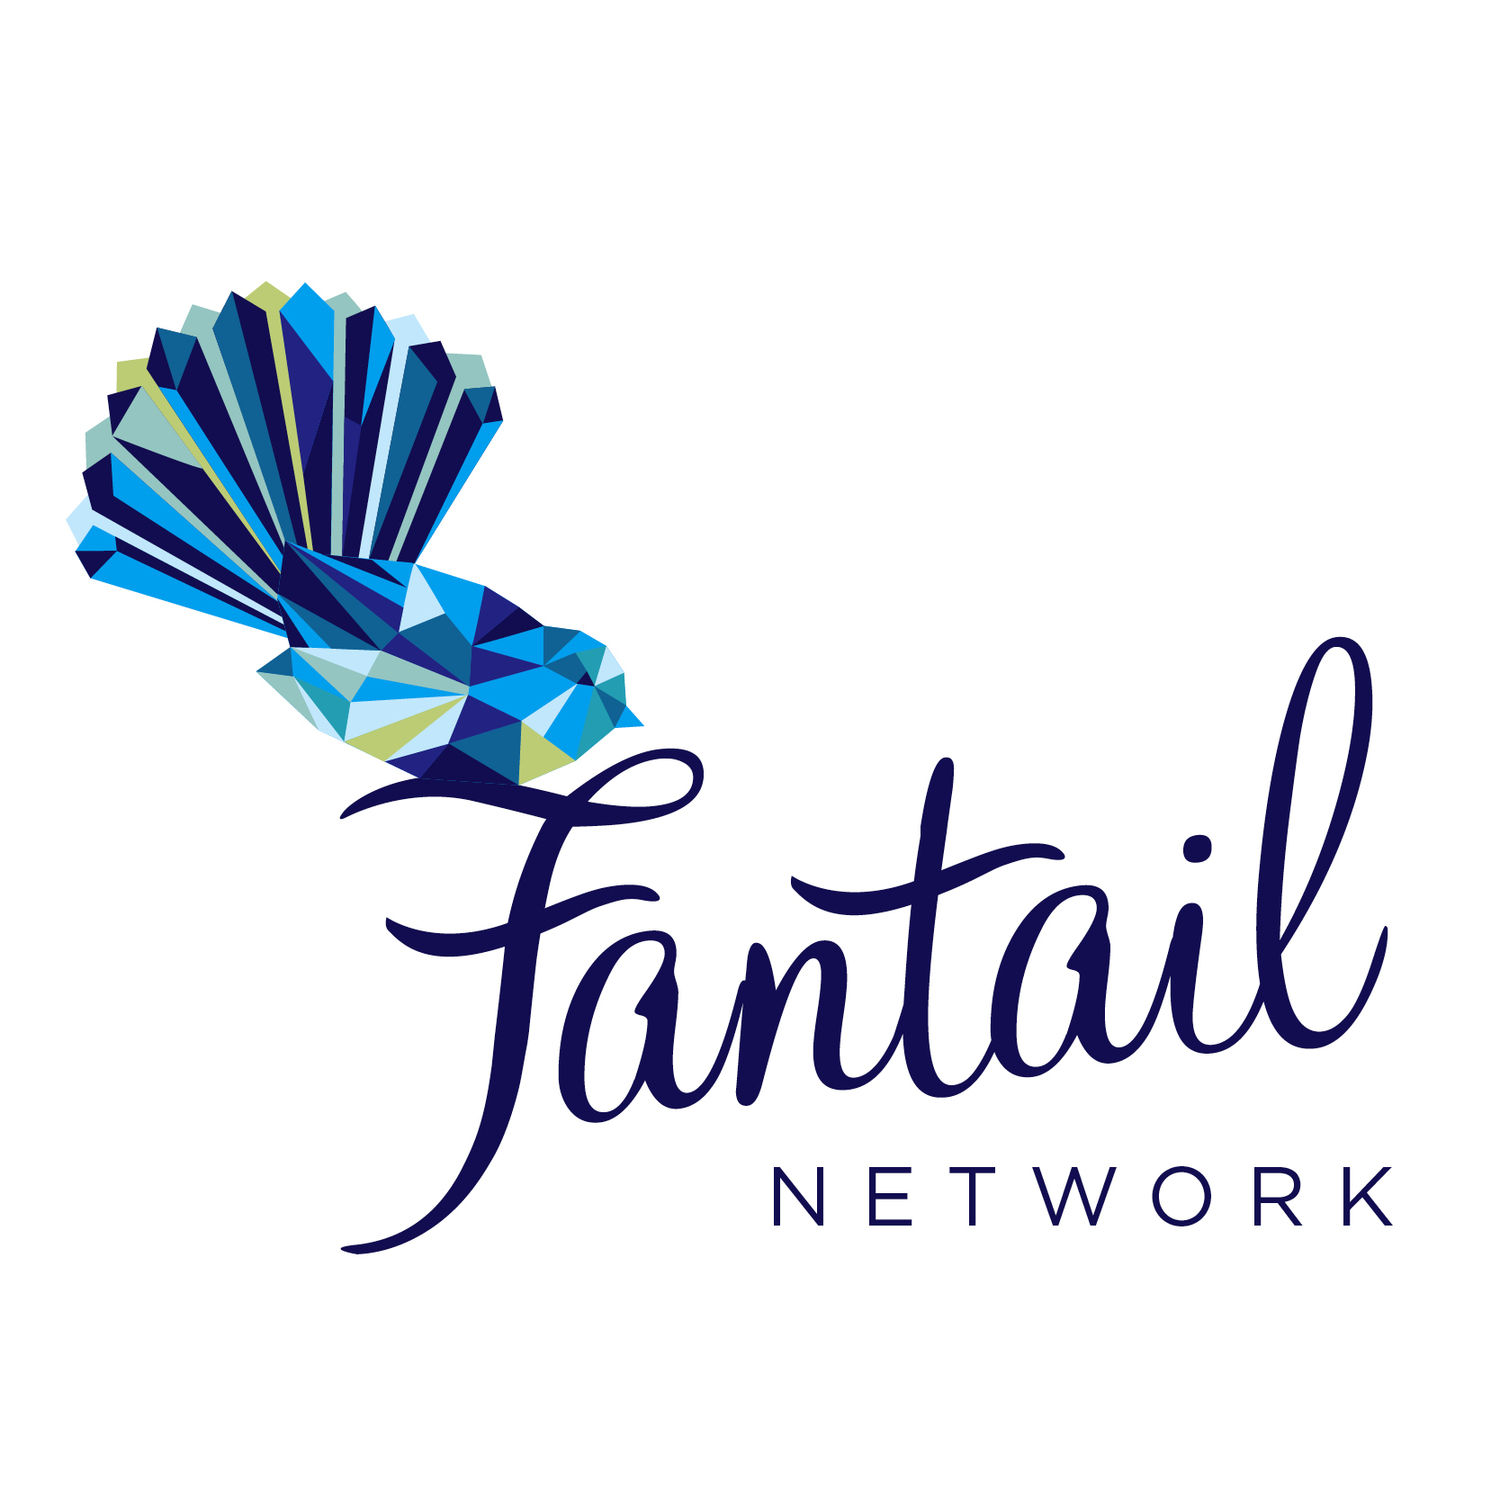 Fantail Network